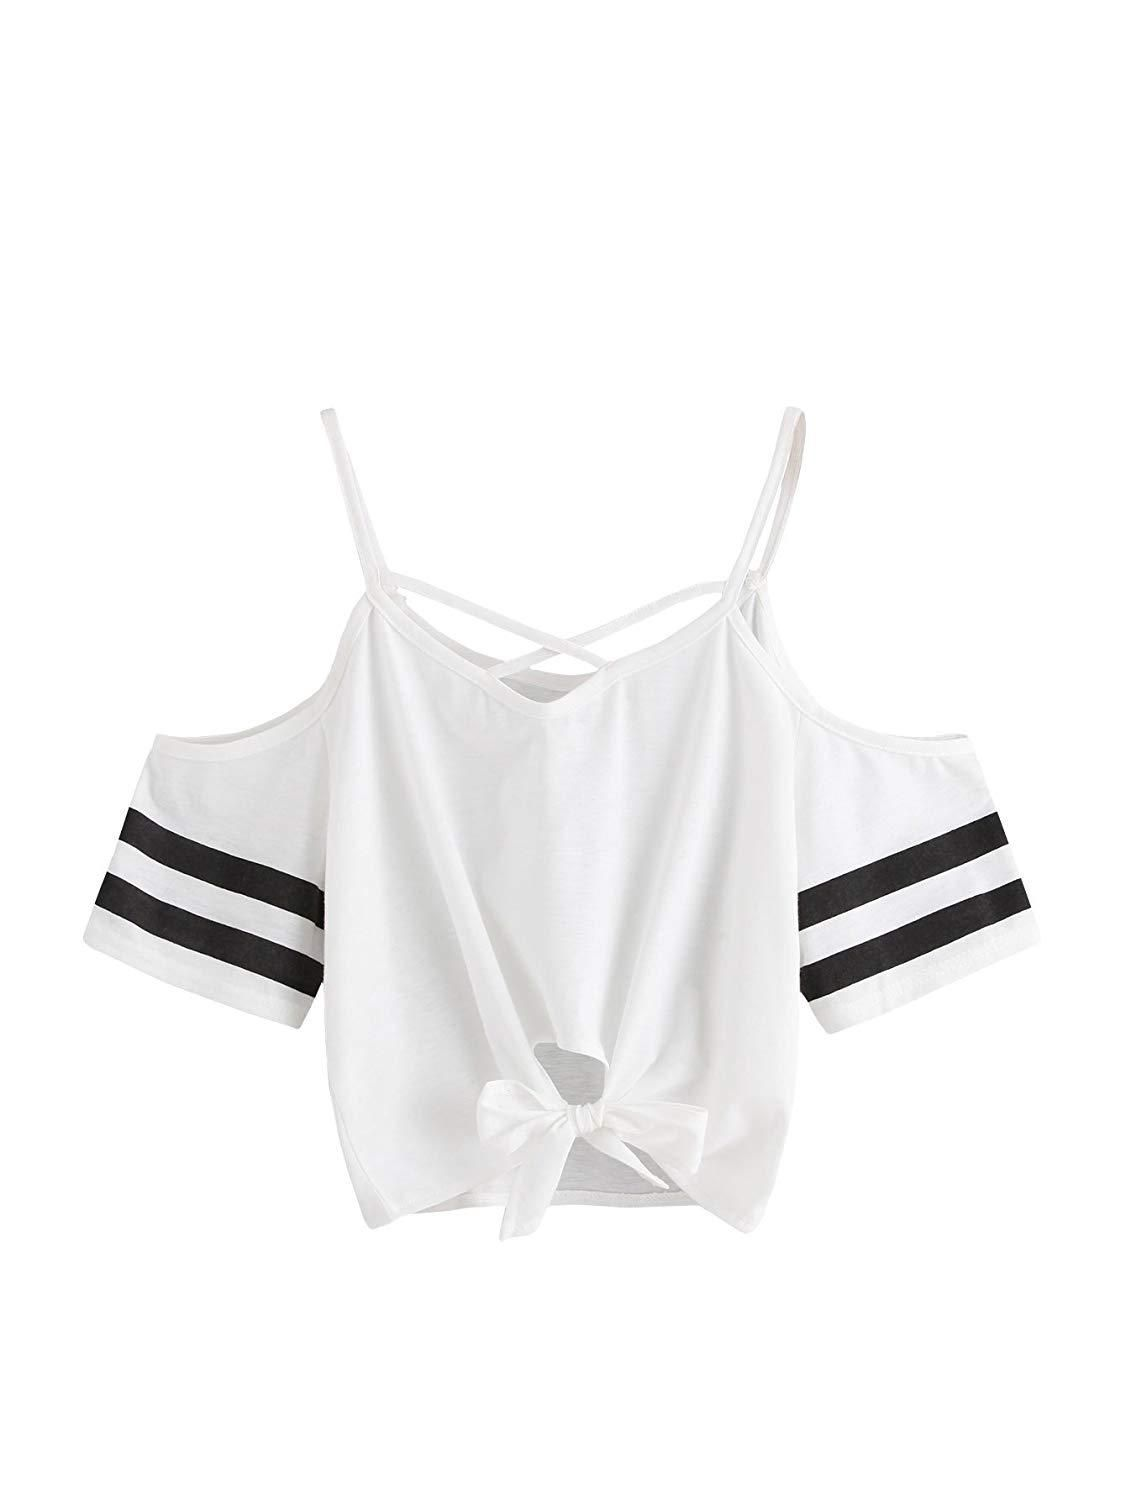 42591f0be09 SweatyRocks Womens Knotted Cold Shoulder T Shirt Criss Cross Crop ...